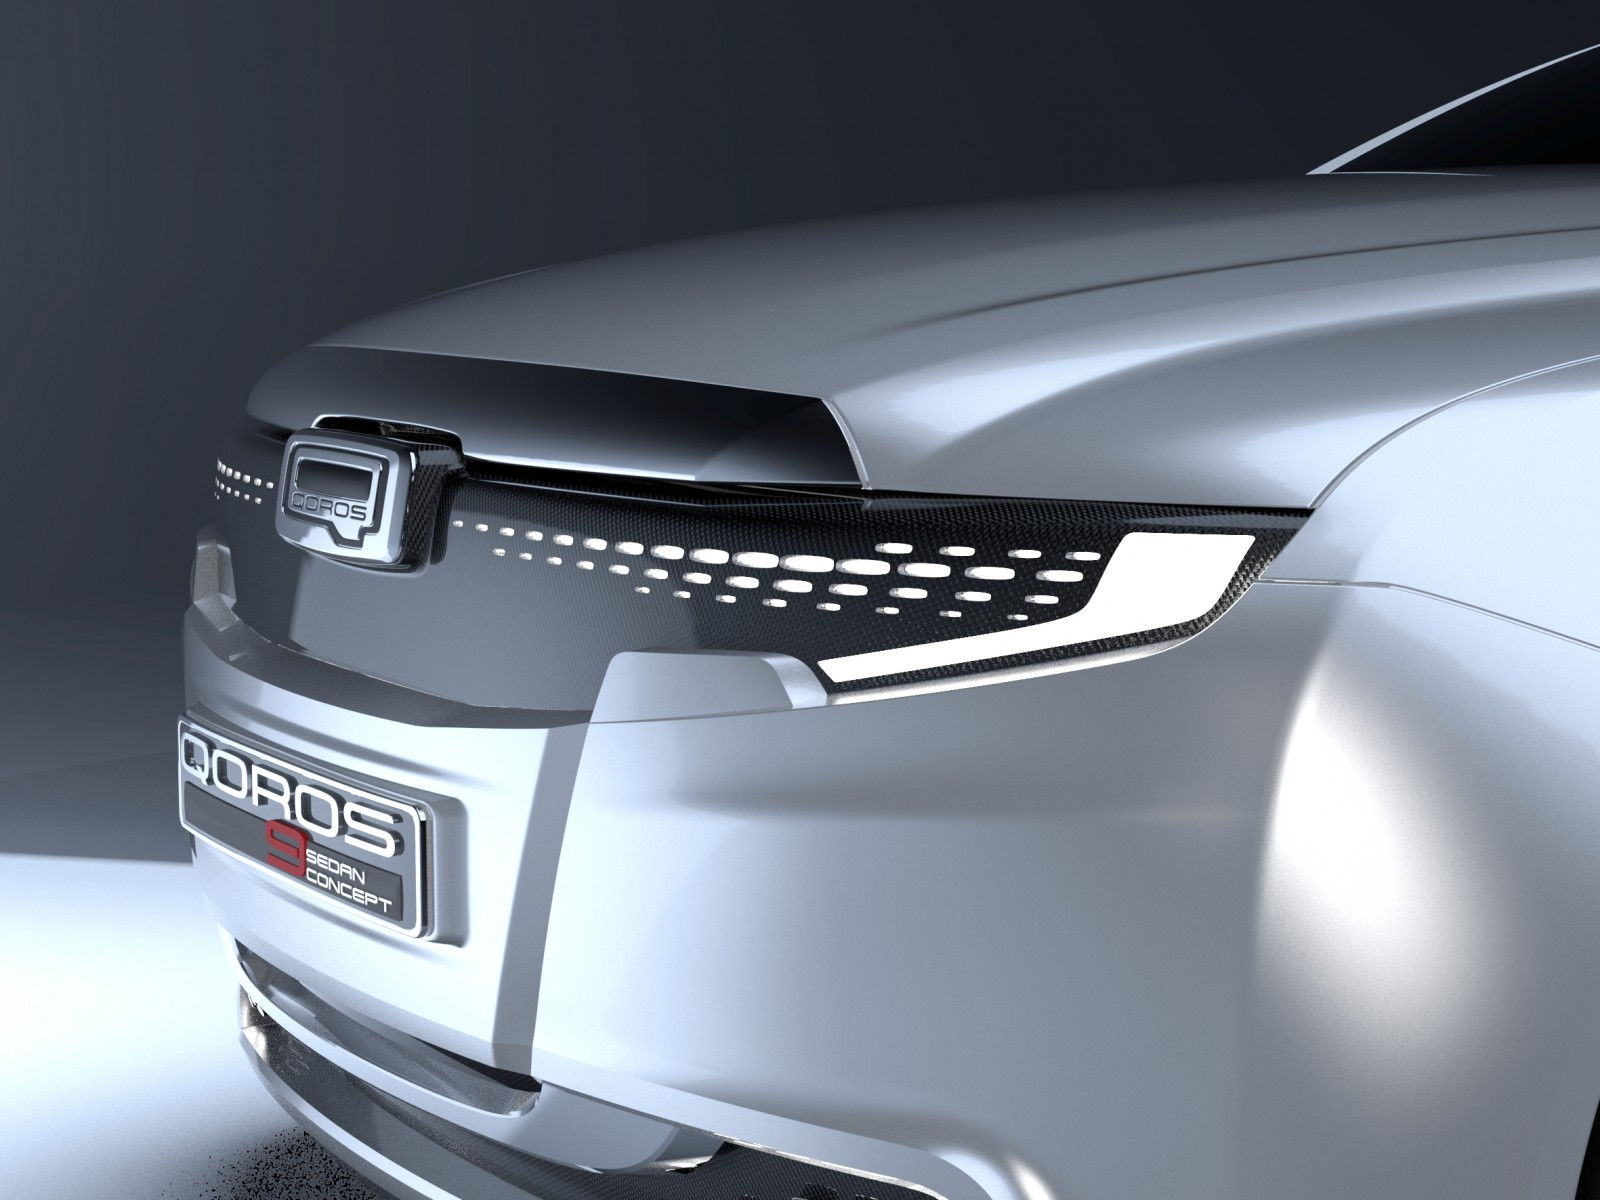 QOROS Is Little Brand With Big Ideas - Qoros9 and Flagship Concept Designs Maturing 5